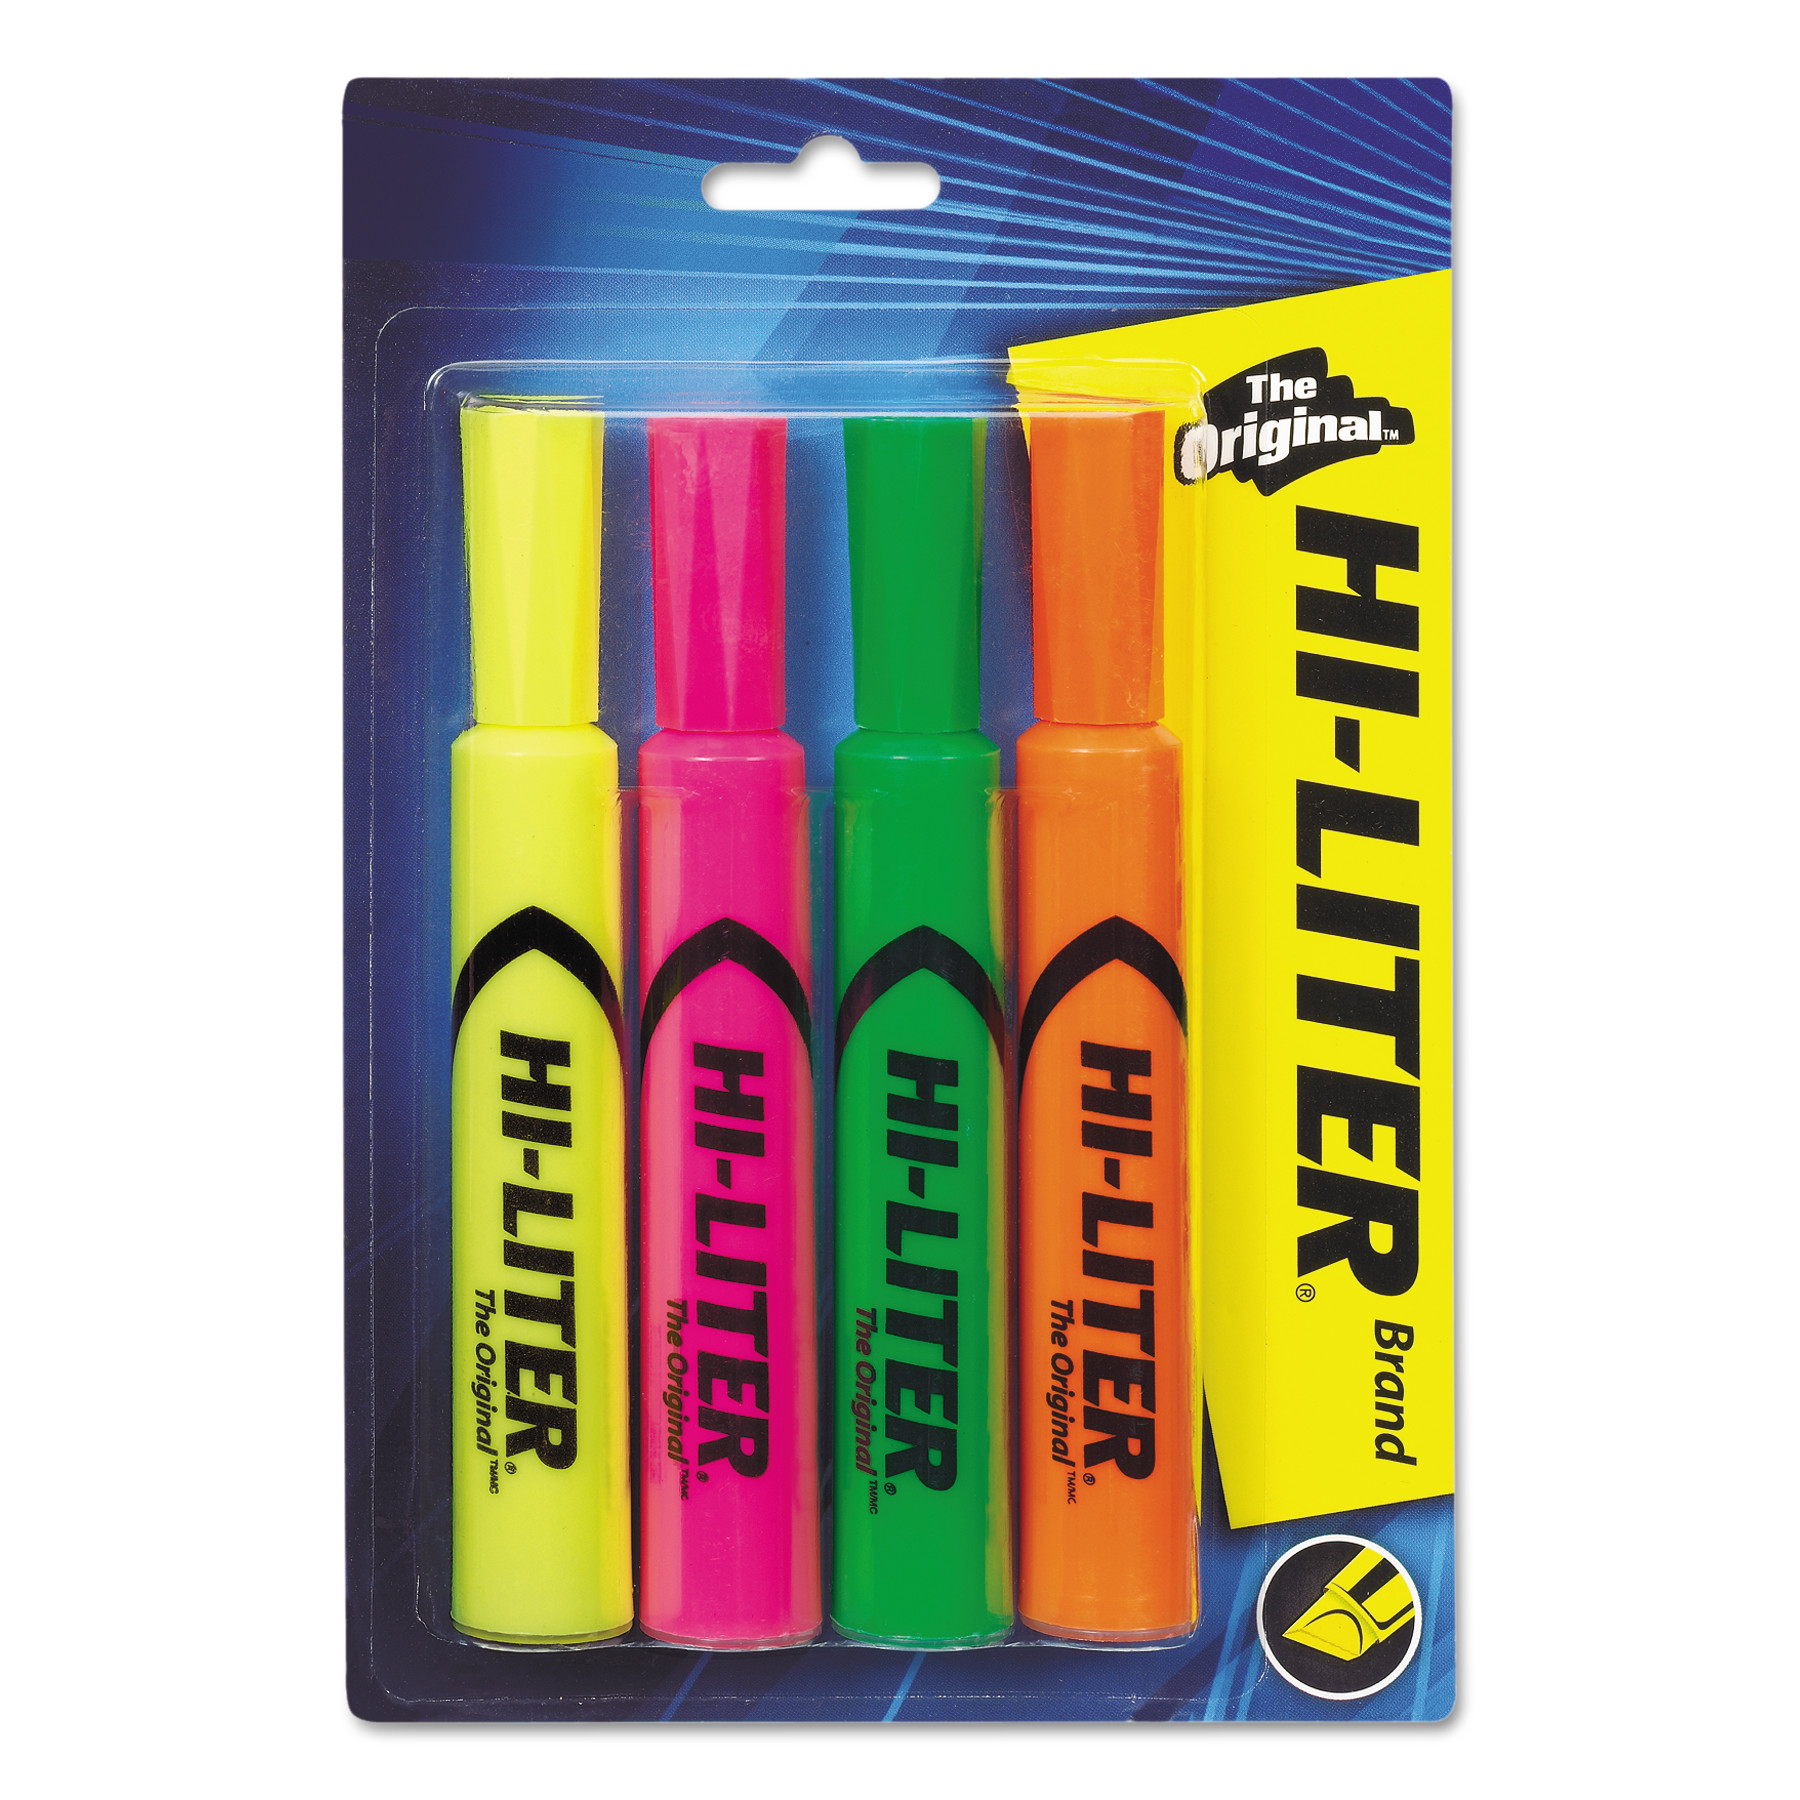 Avery(R) HI-LITER(R) Desk-Style Highlighters, SmearSafe(TM), Nontoxic, Assorted Colors (1 Fl. Yellow, 1 Fl. Pink, 1 Fl. Green, 1 Fl. Orange), Pack of 4 (24063)